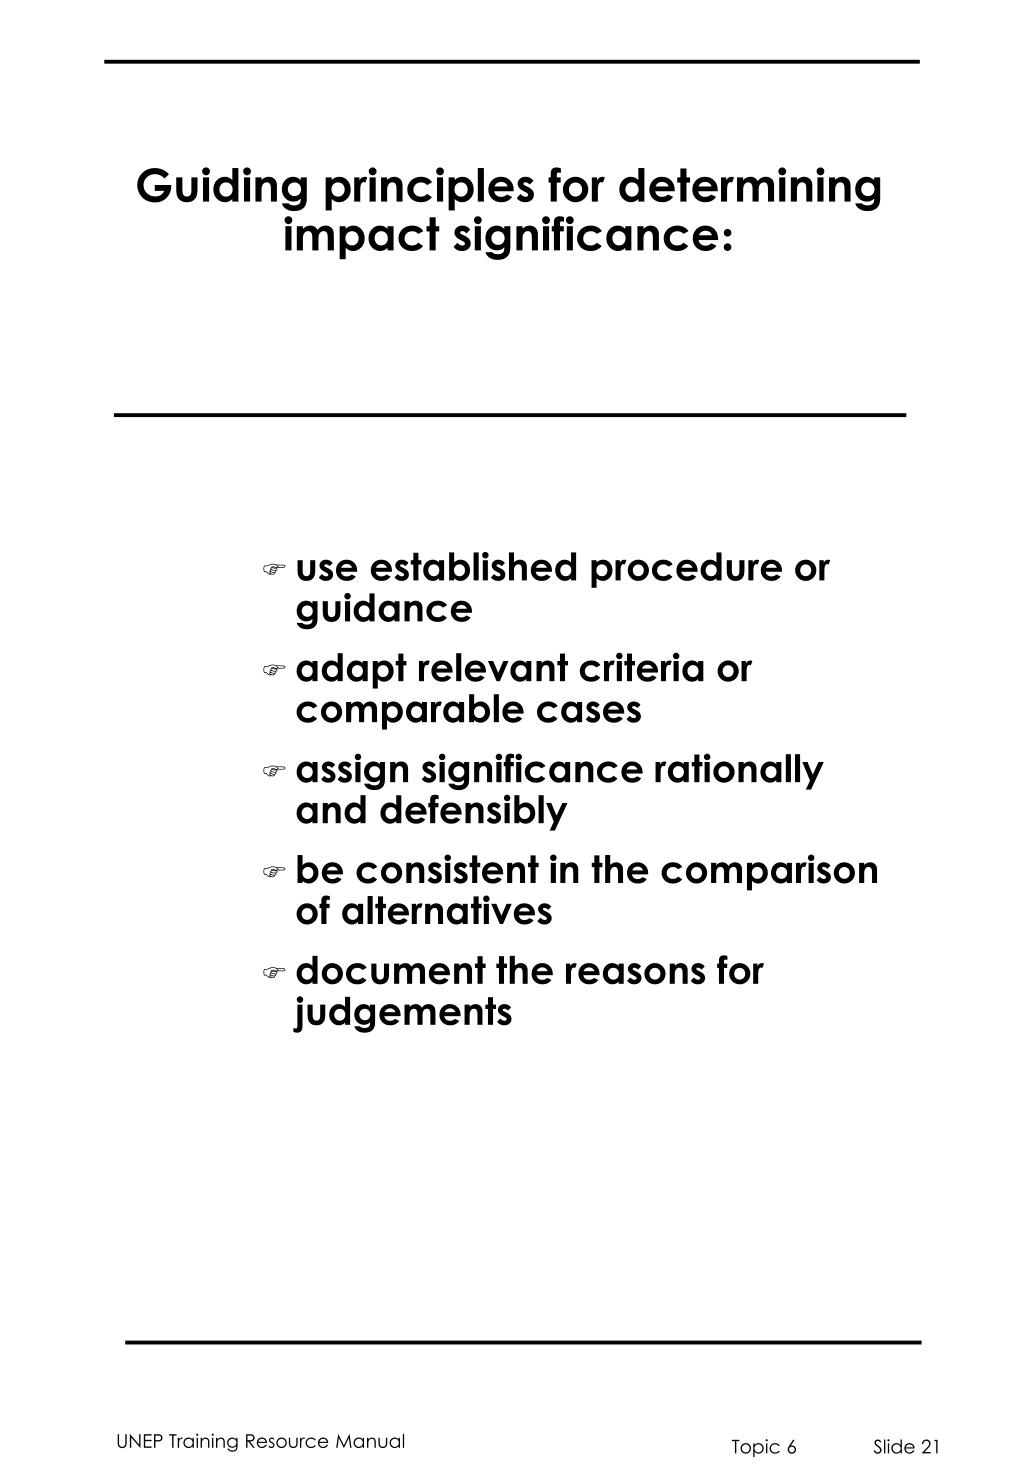 Guiding principles for determining impact significance